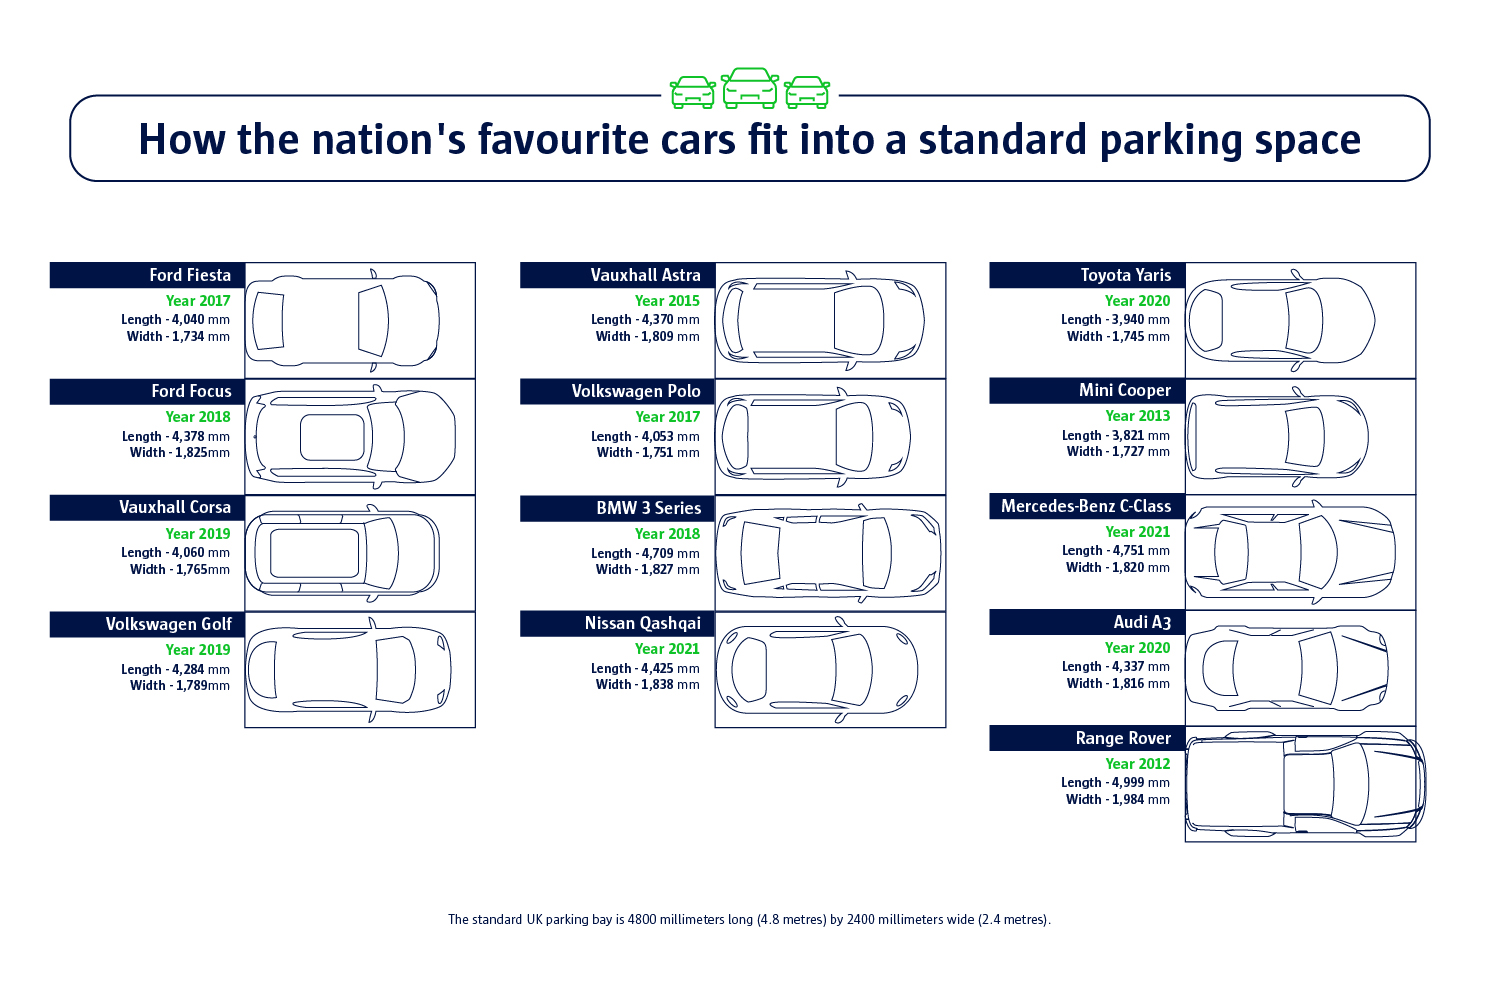 How the nation's favourite cars fit into a standard parking space